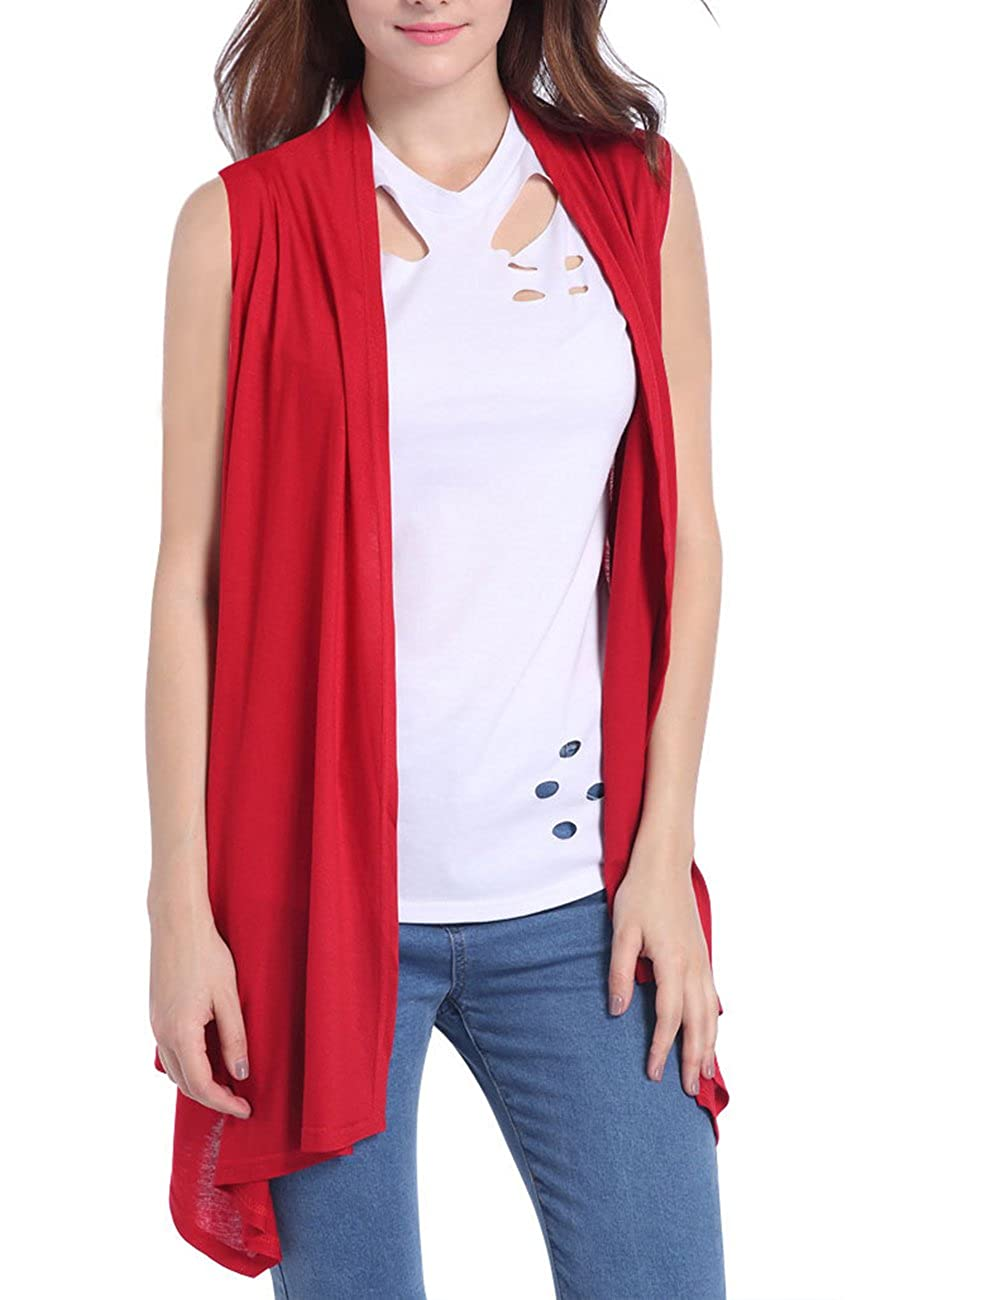 SOMTHRON Women's Sleeveless Blouse Pullover Asymmetric Open Knitted Cardigan Sweater